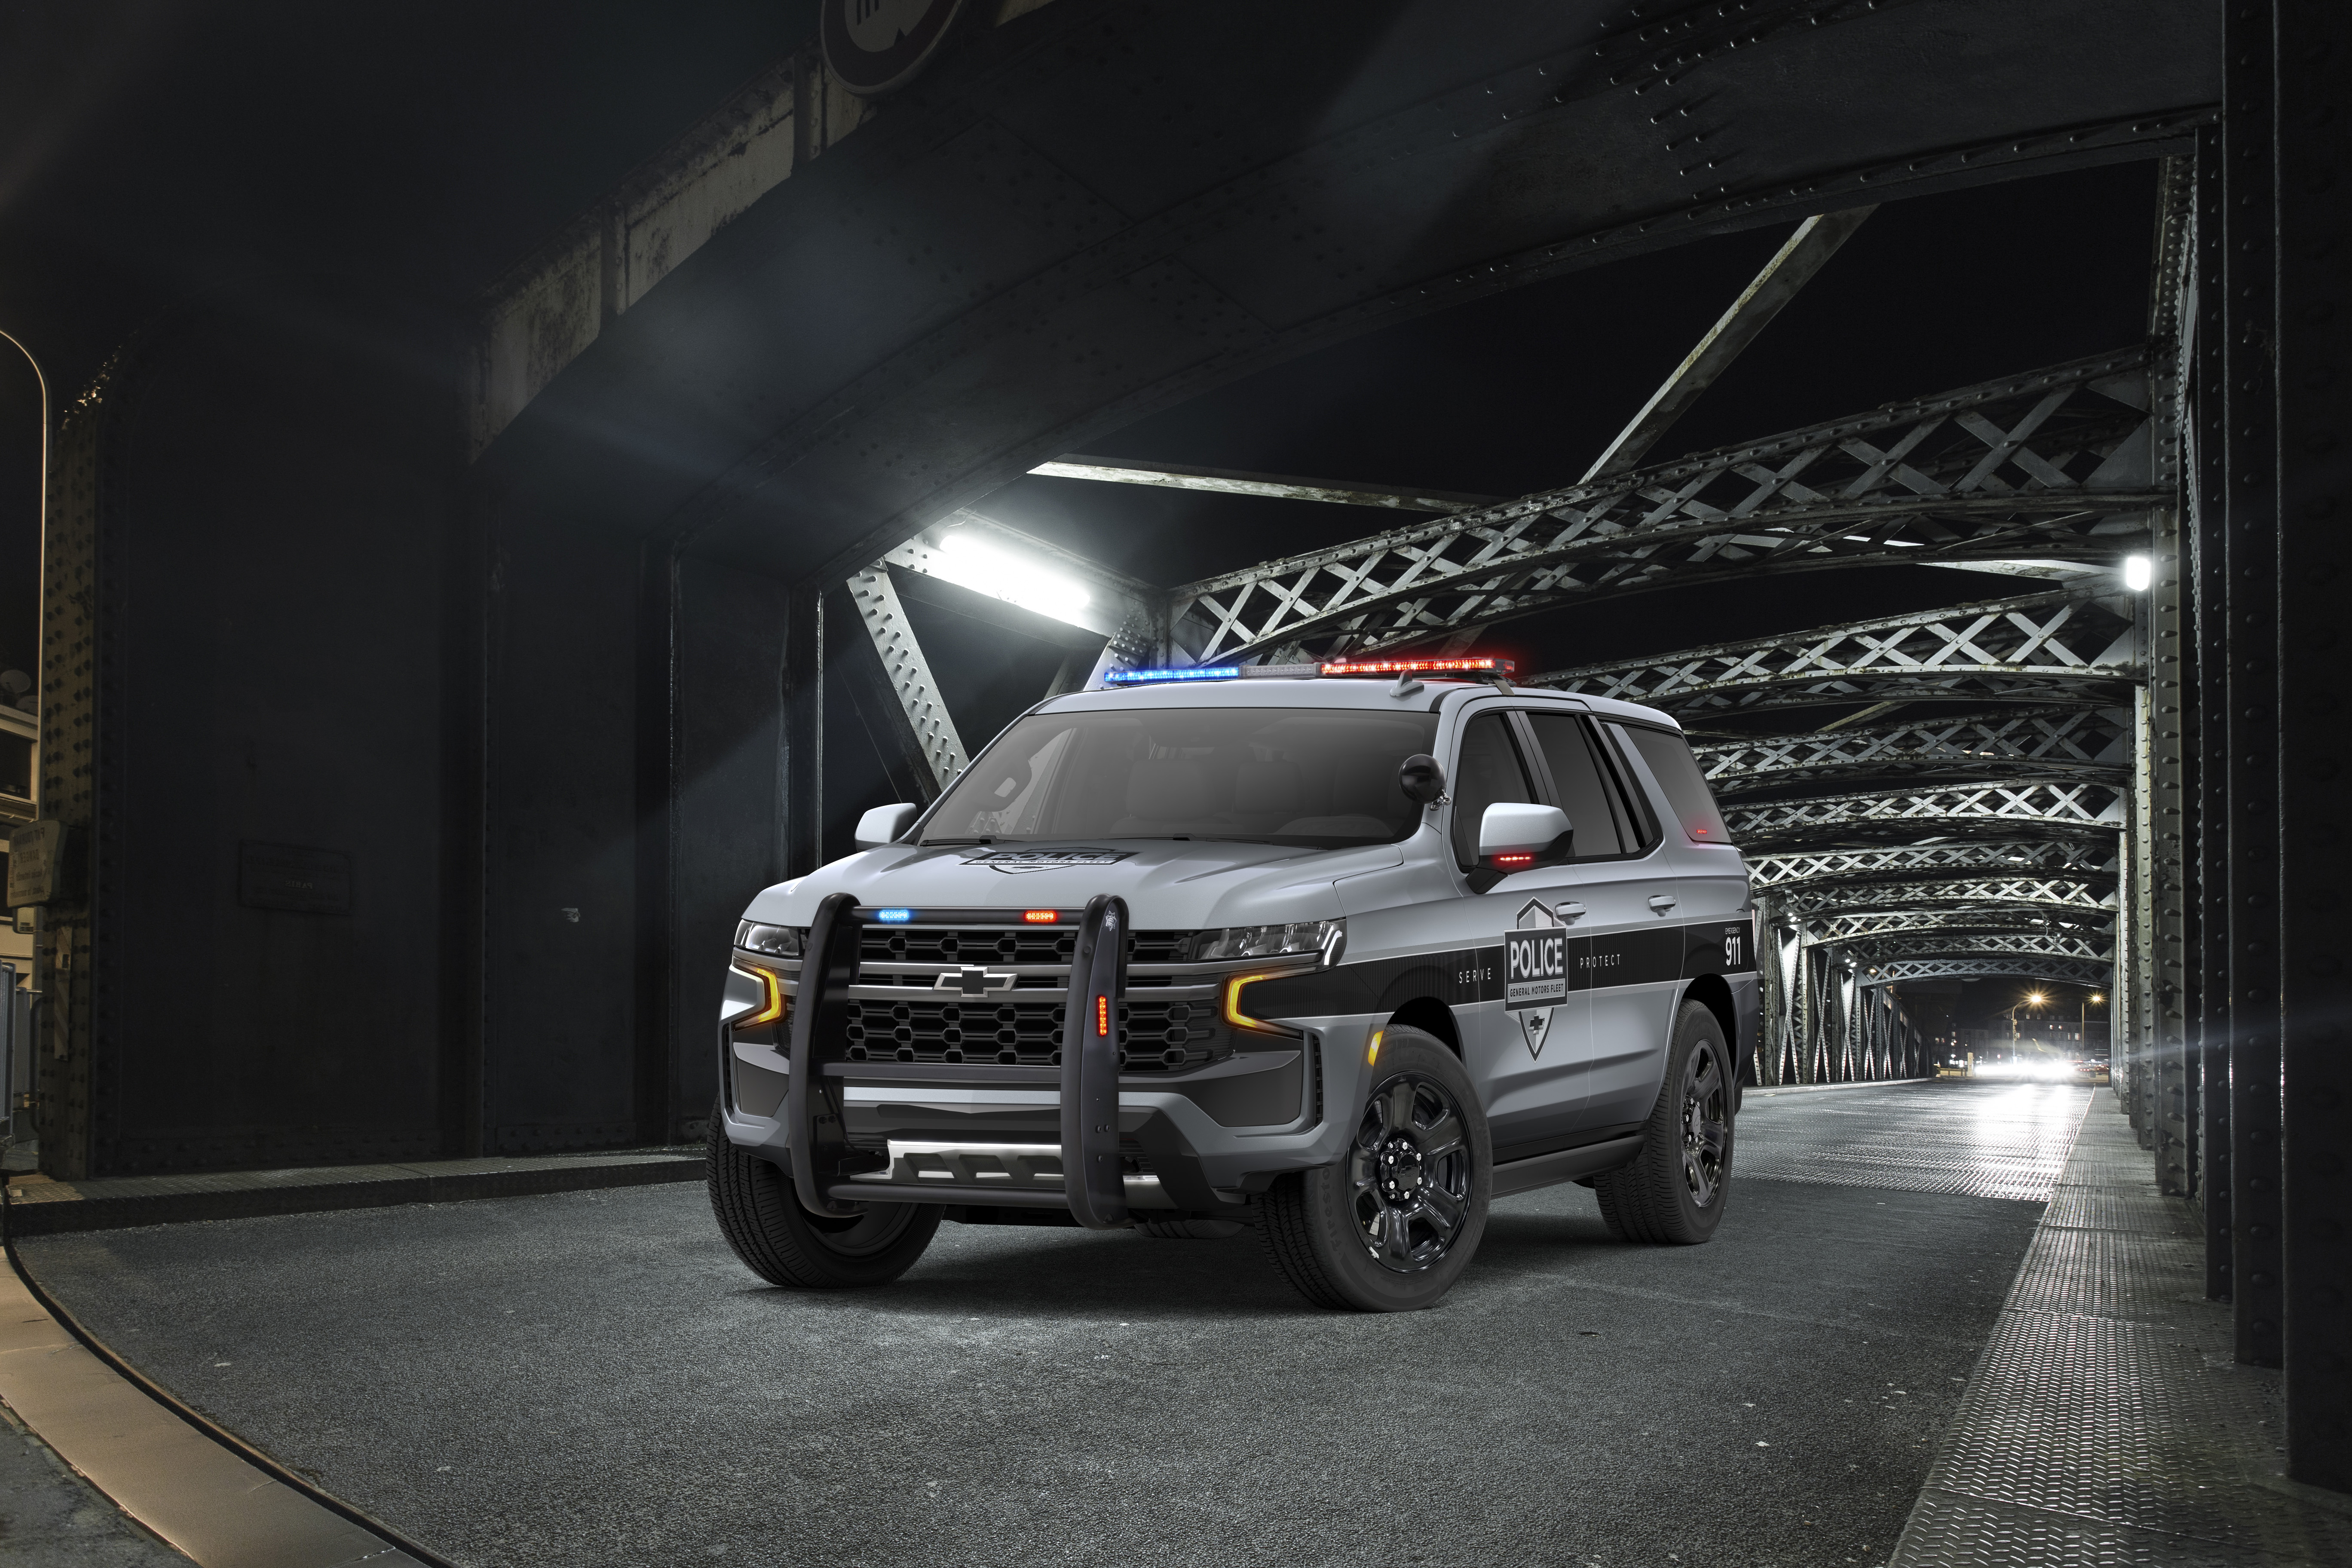 2021 Chevrolet Tahoe Suits Up For DutyChevrolet Pressroom